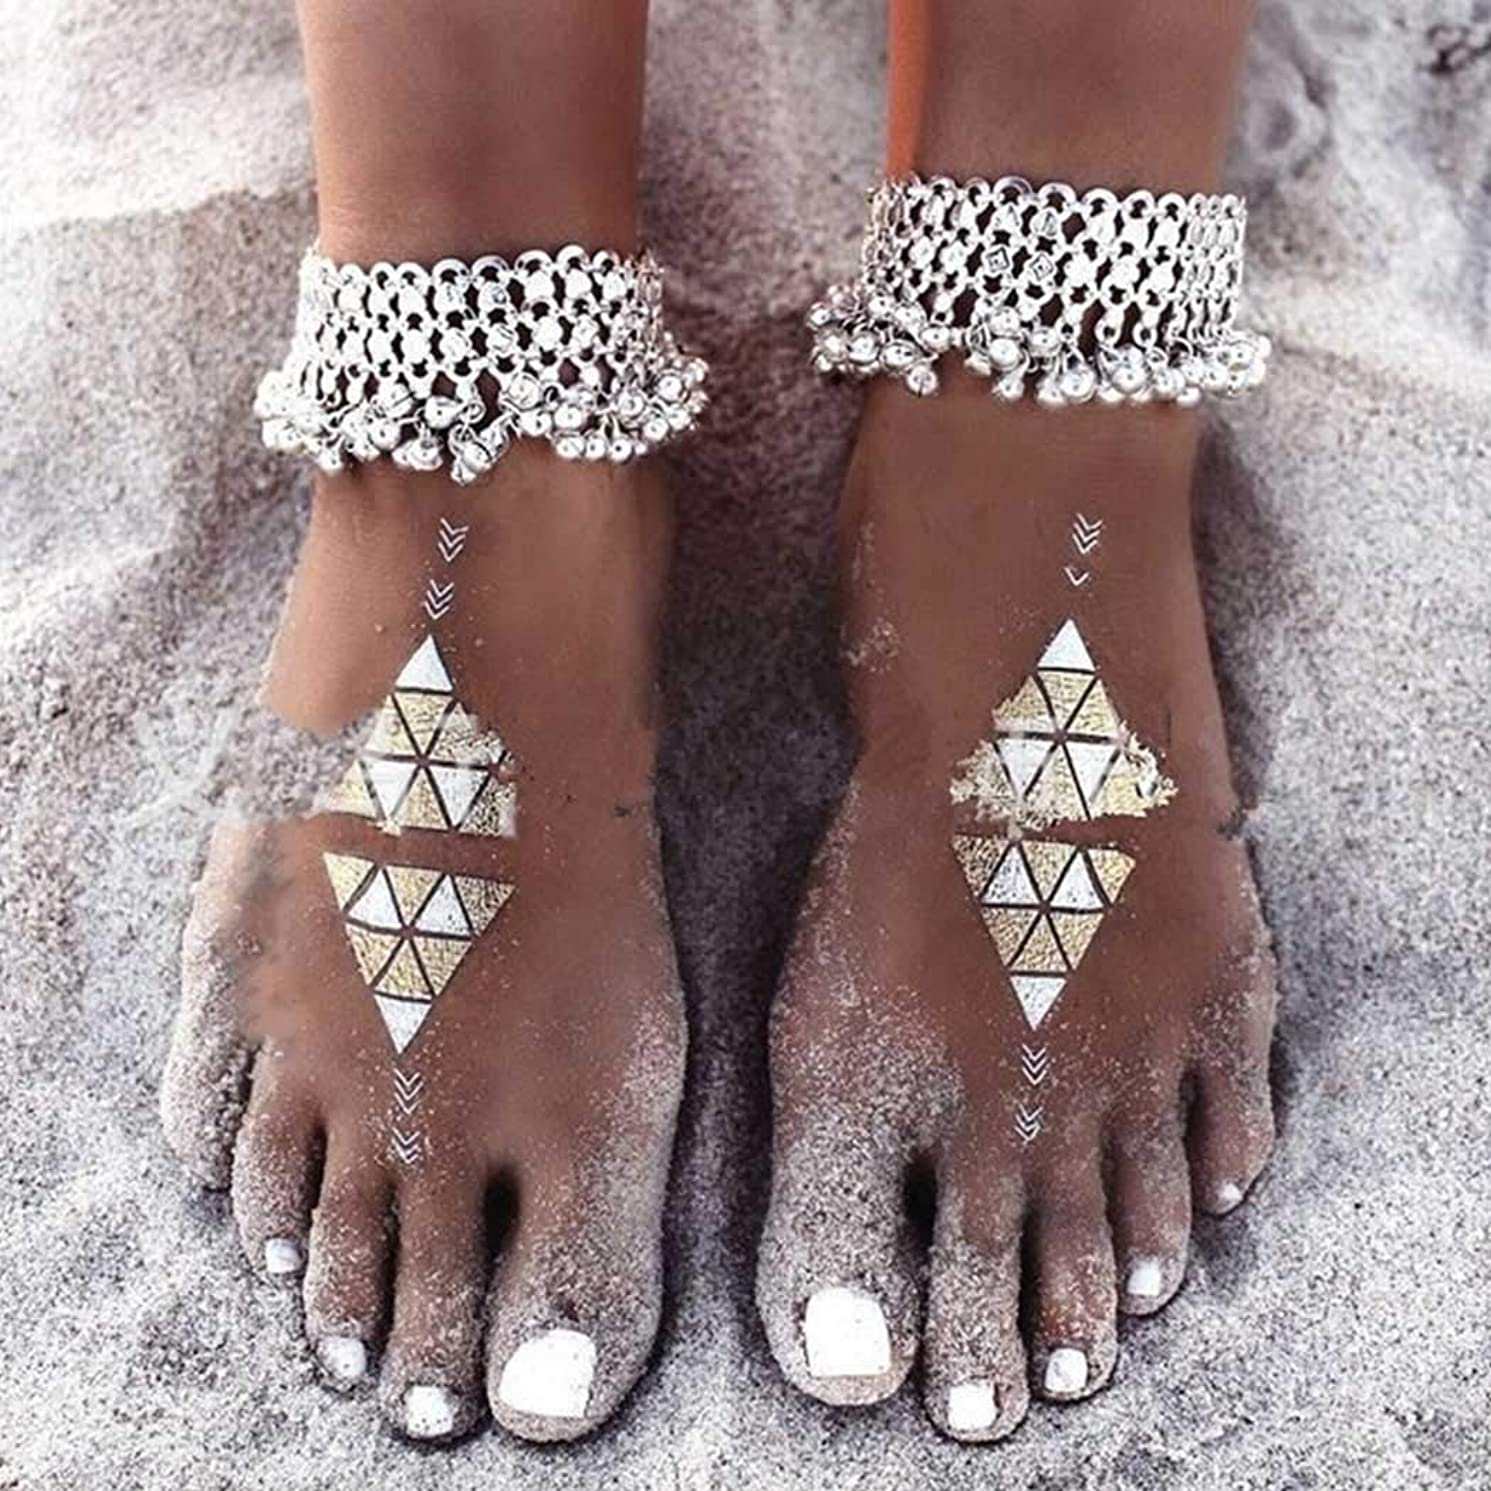 Nicute Boho Tassel Anklet Bell Ankle Bracrlets Silver Foot Jewelry for Women and Girls